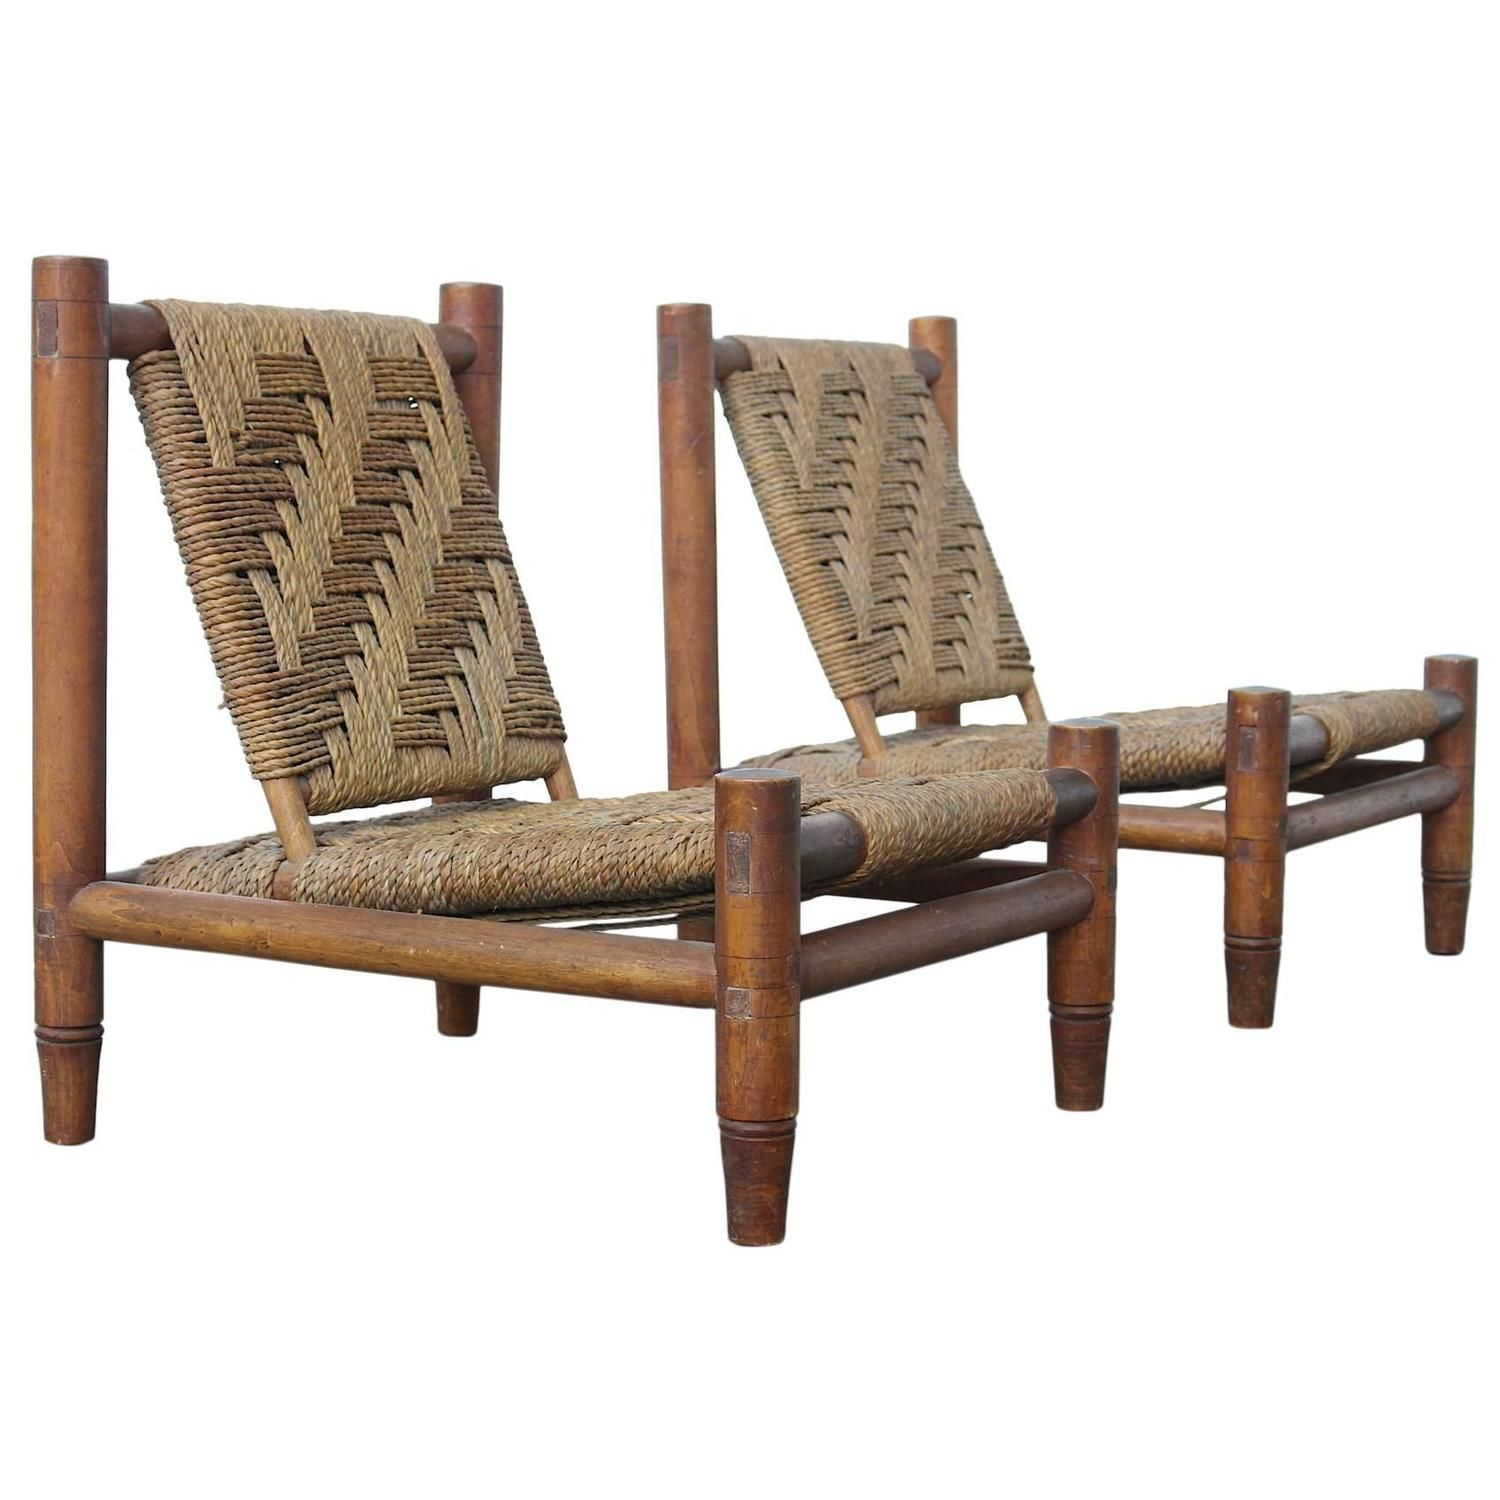 Pair of Rare French 1950s Charlotte Perriand Style Easy Chairs | See more antique and modern Lounge Chairs at https://www.1stdibs.com/furniture/seating/lounge-chairs